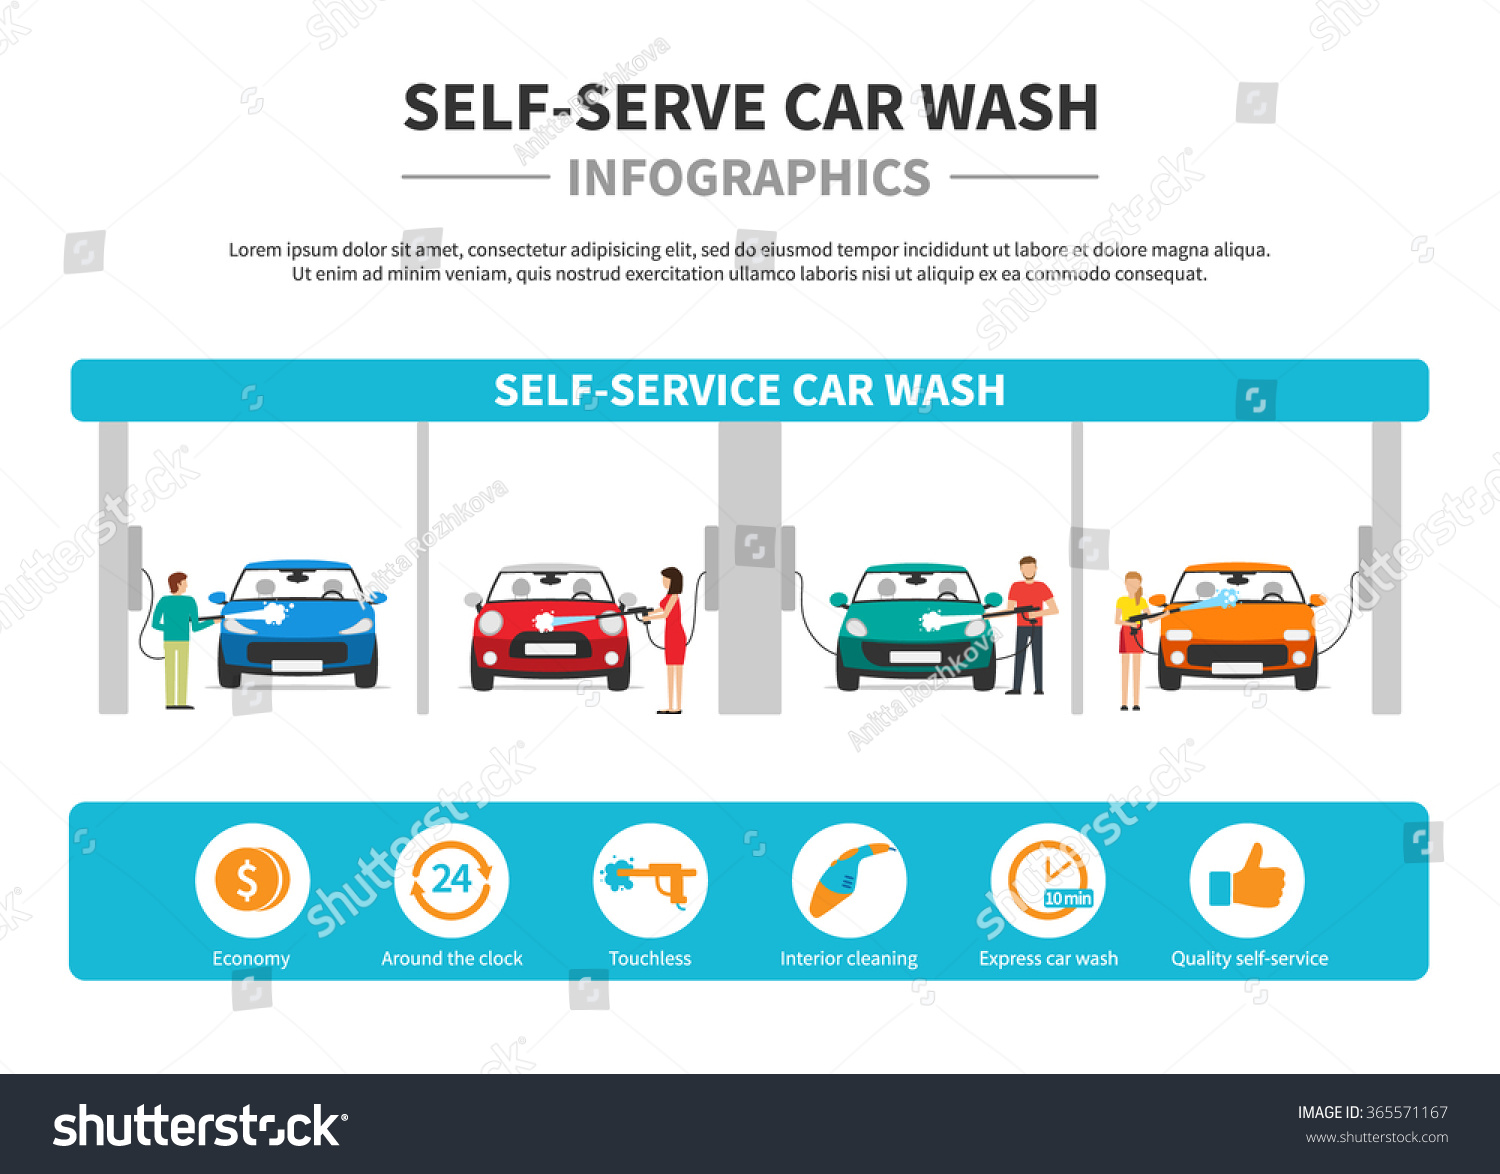 selfservice car wash infographics flat style stock vector 365571167 shutterstock. Black Bedroom Furniture Sets. Home Design Ideas